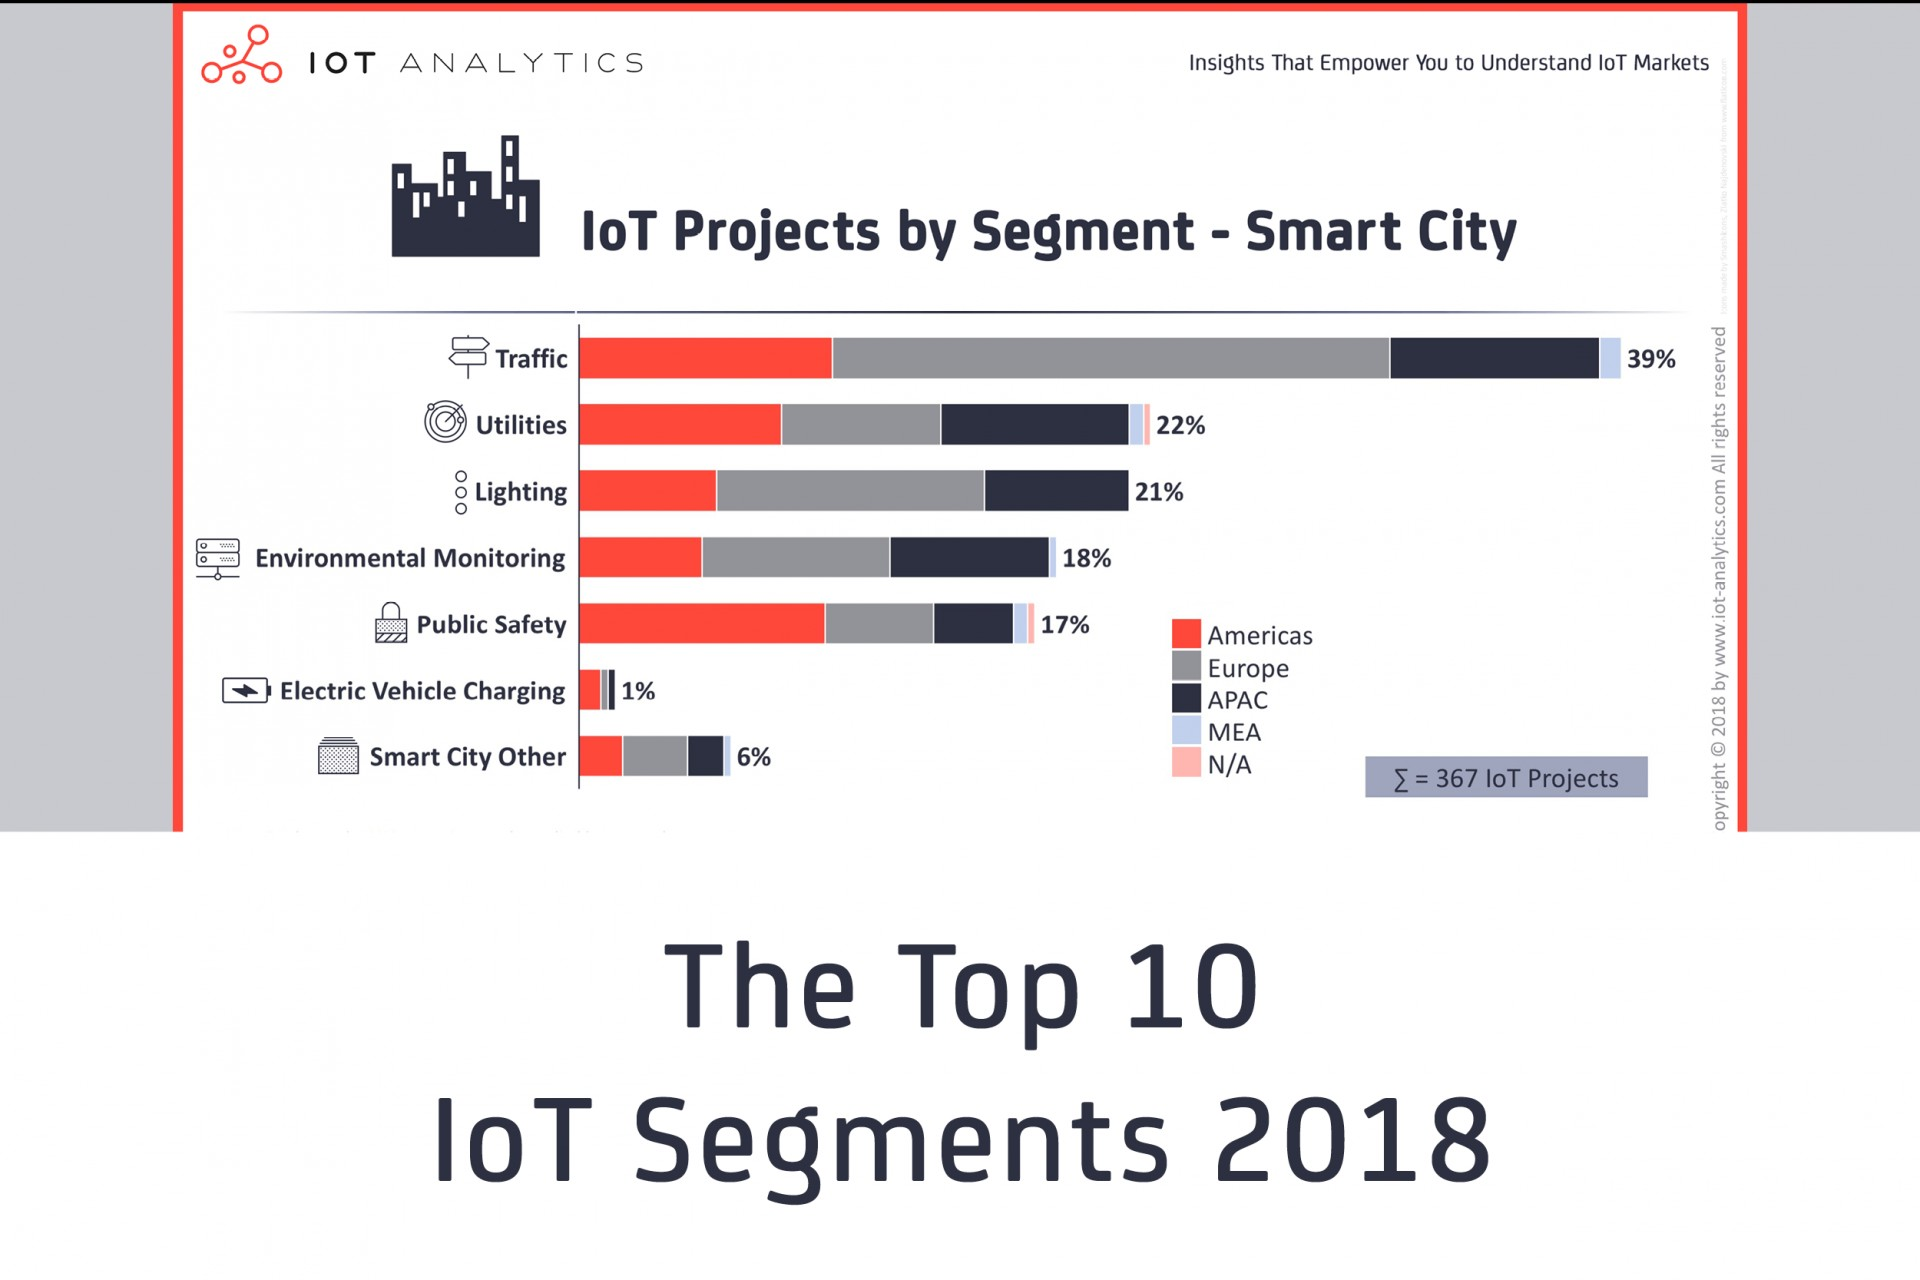 011 Top 10 Iot Segments In Research Paper Internet Of Things Pdf Dreaded 2018 1920